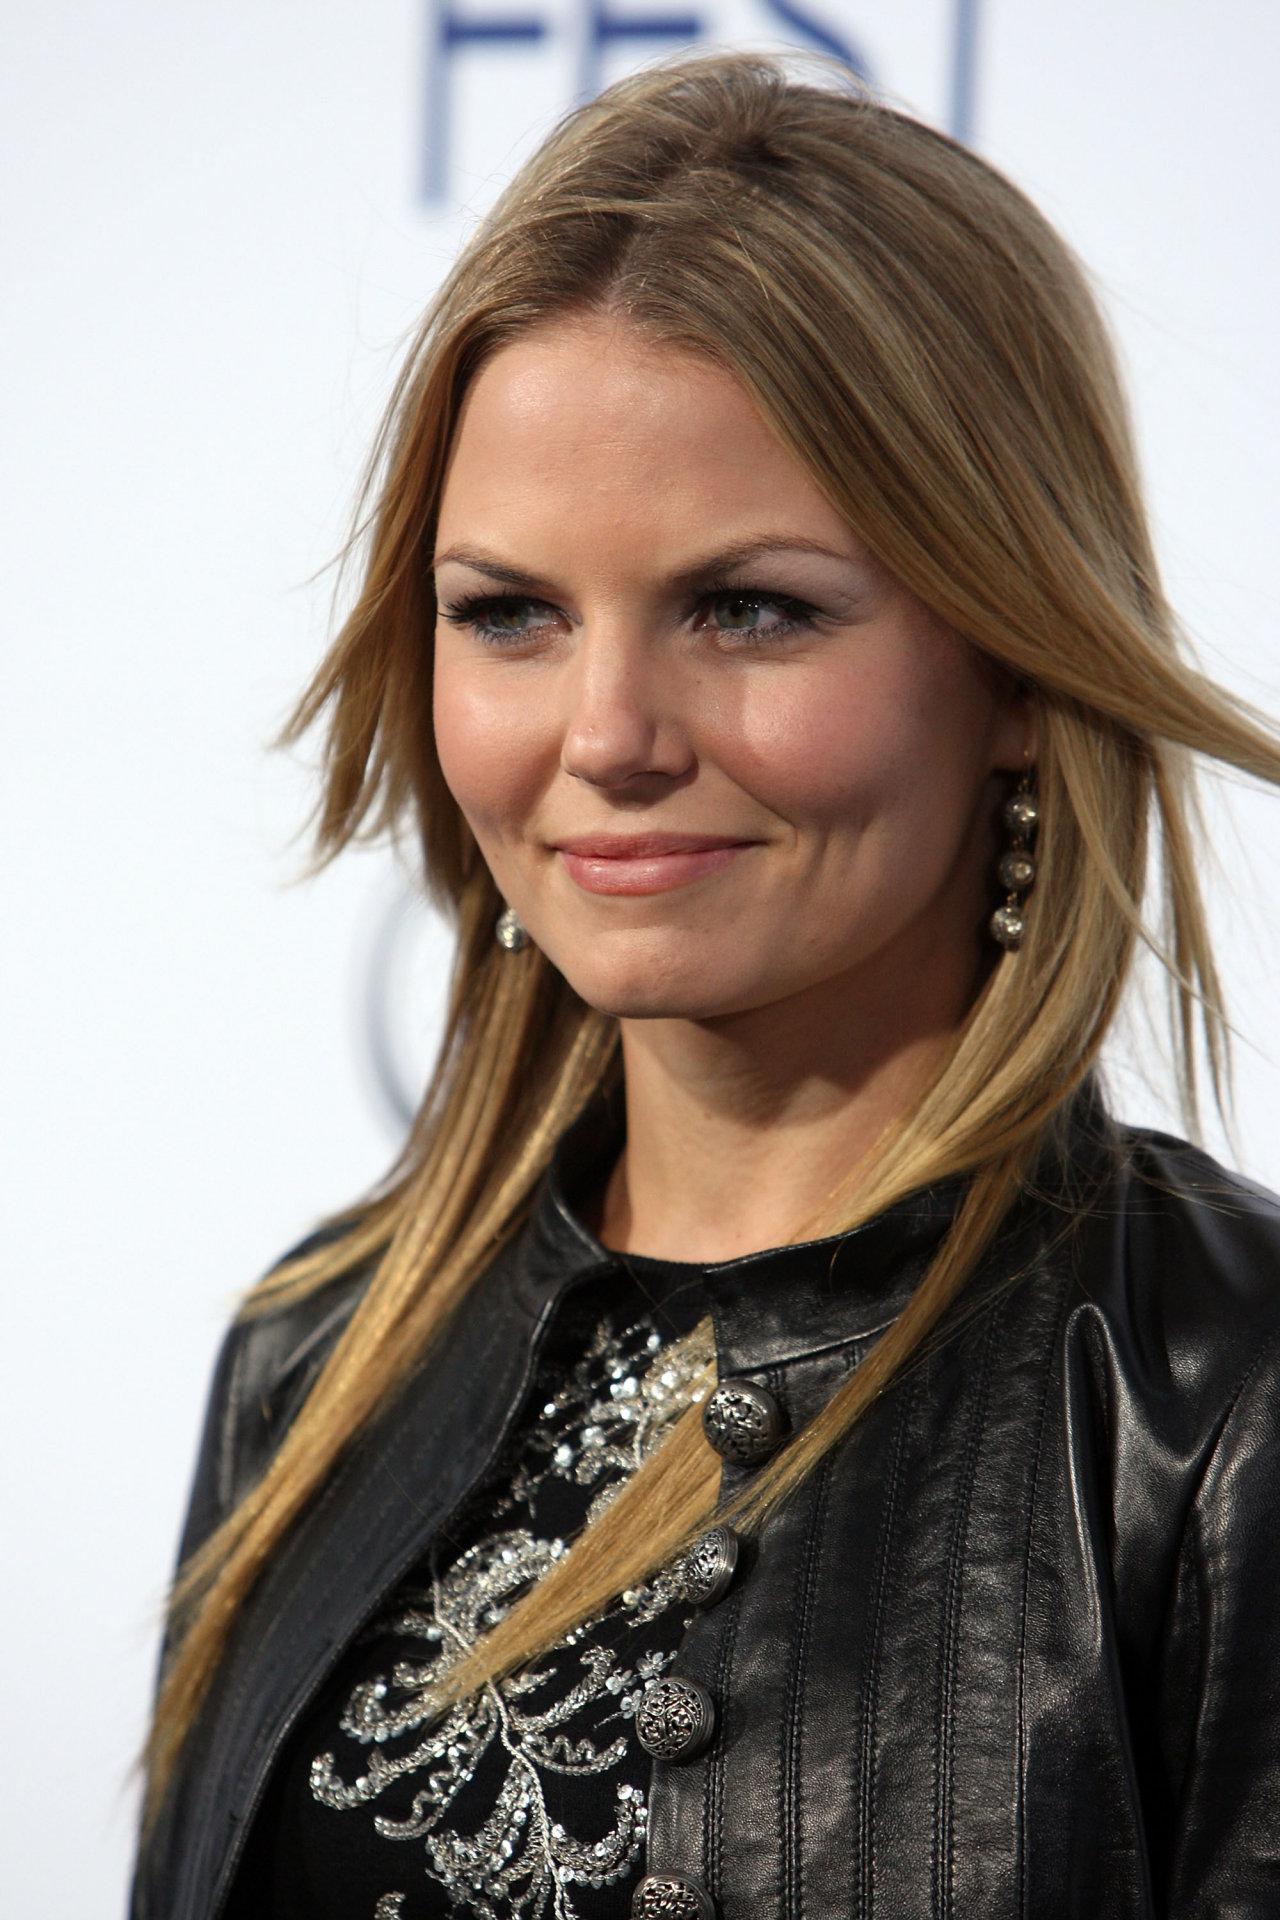 Photo Jennifer Morrison - Wallpapers with a celebrity ...: http://ua-dreams.com/celebrity/jennifer-morrison/g3gp.html